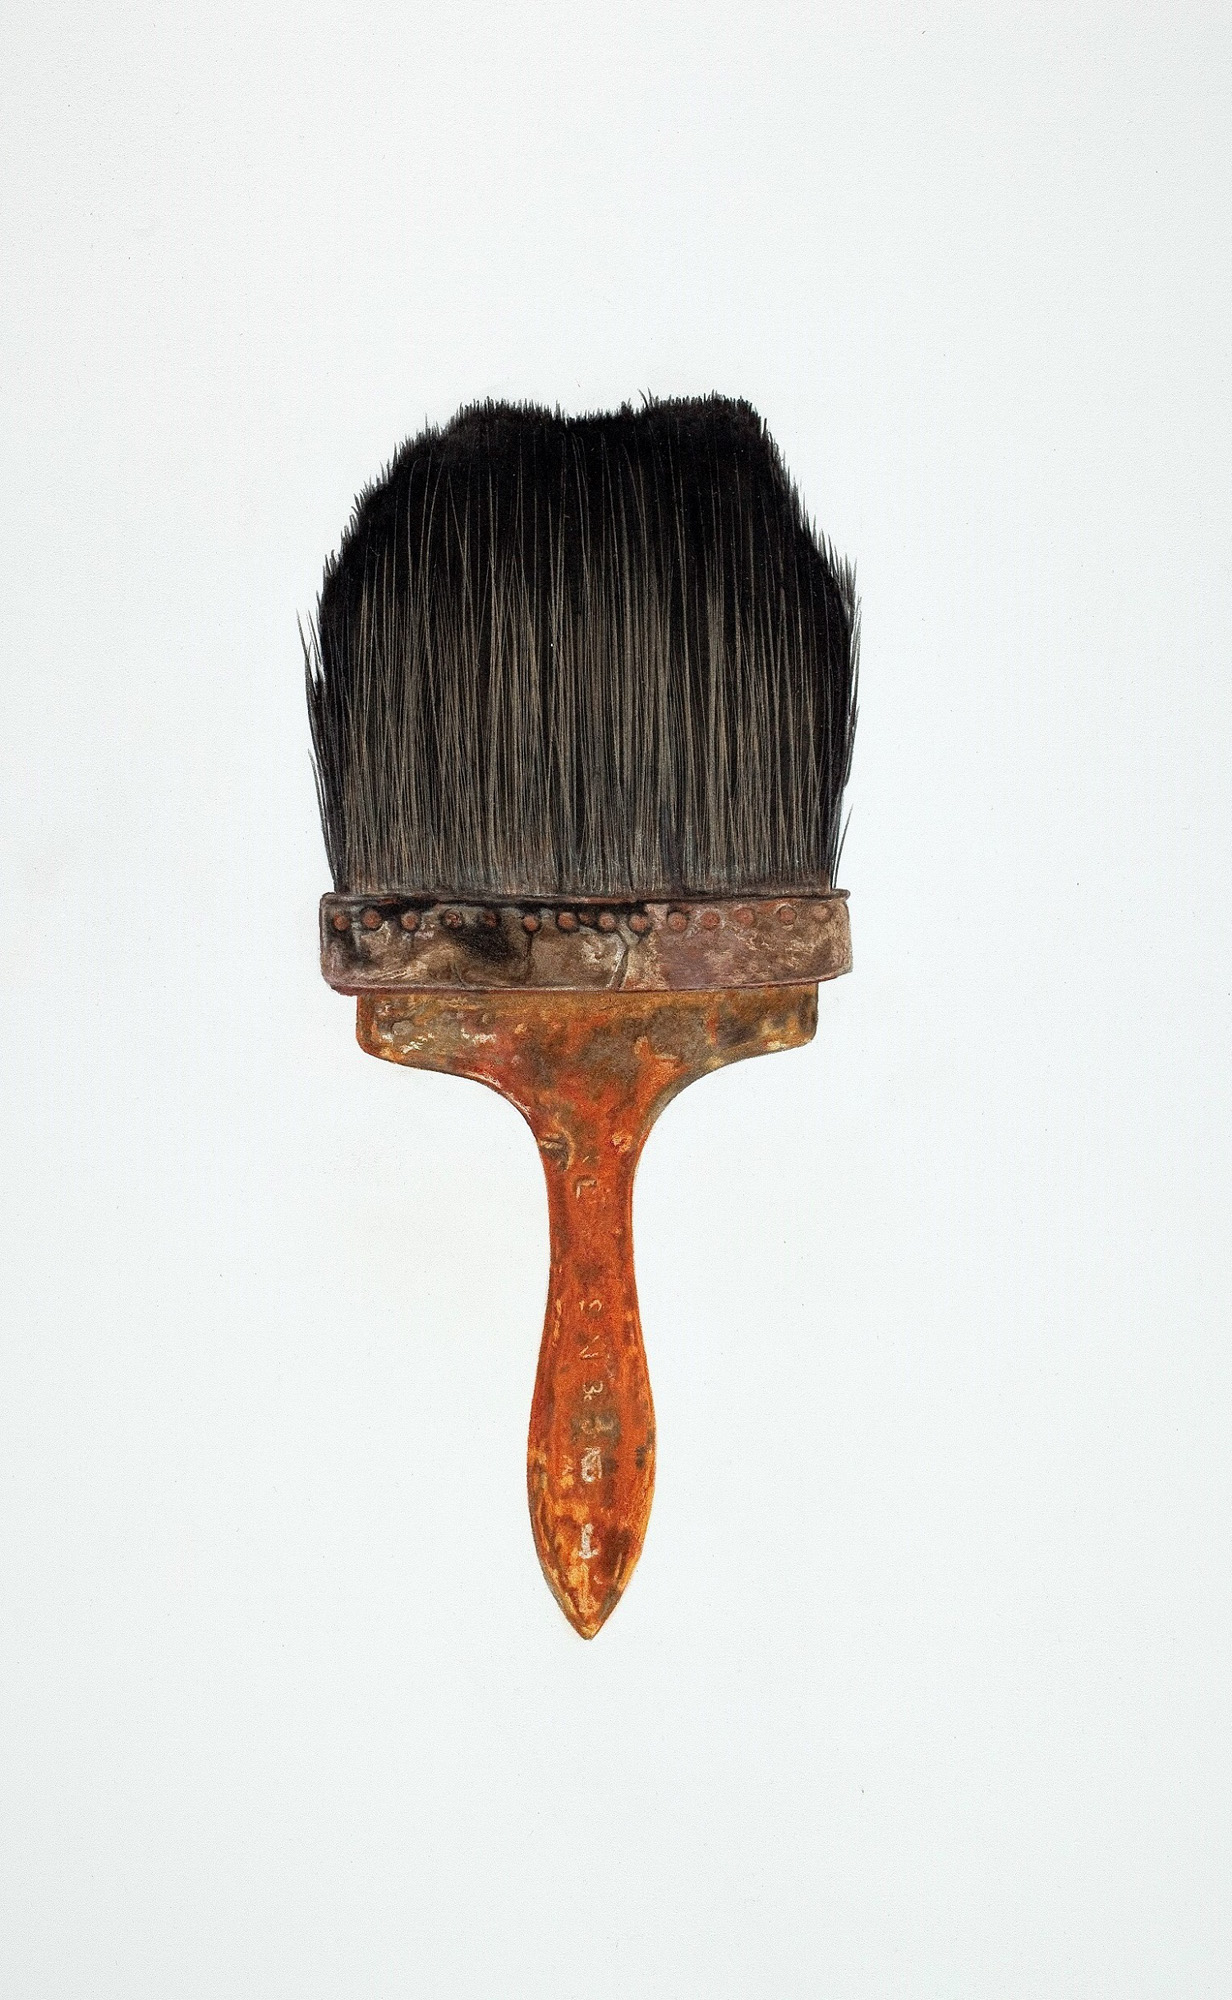 Philip Carpenter Paint Brush, color pencils on paper, 28 x 20 inches